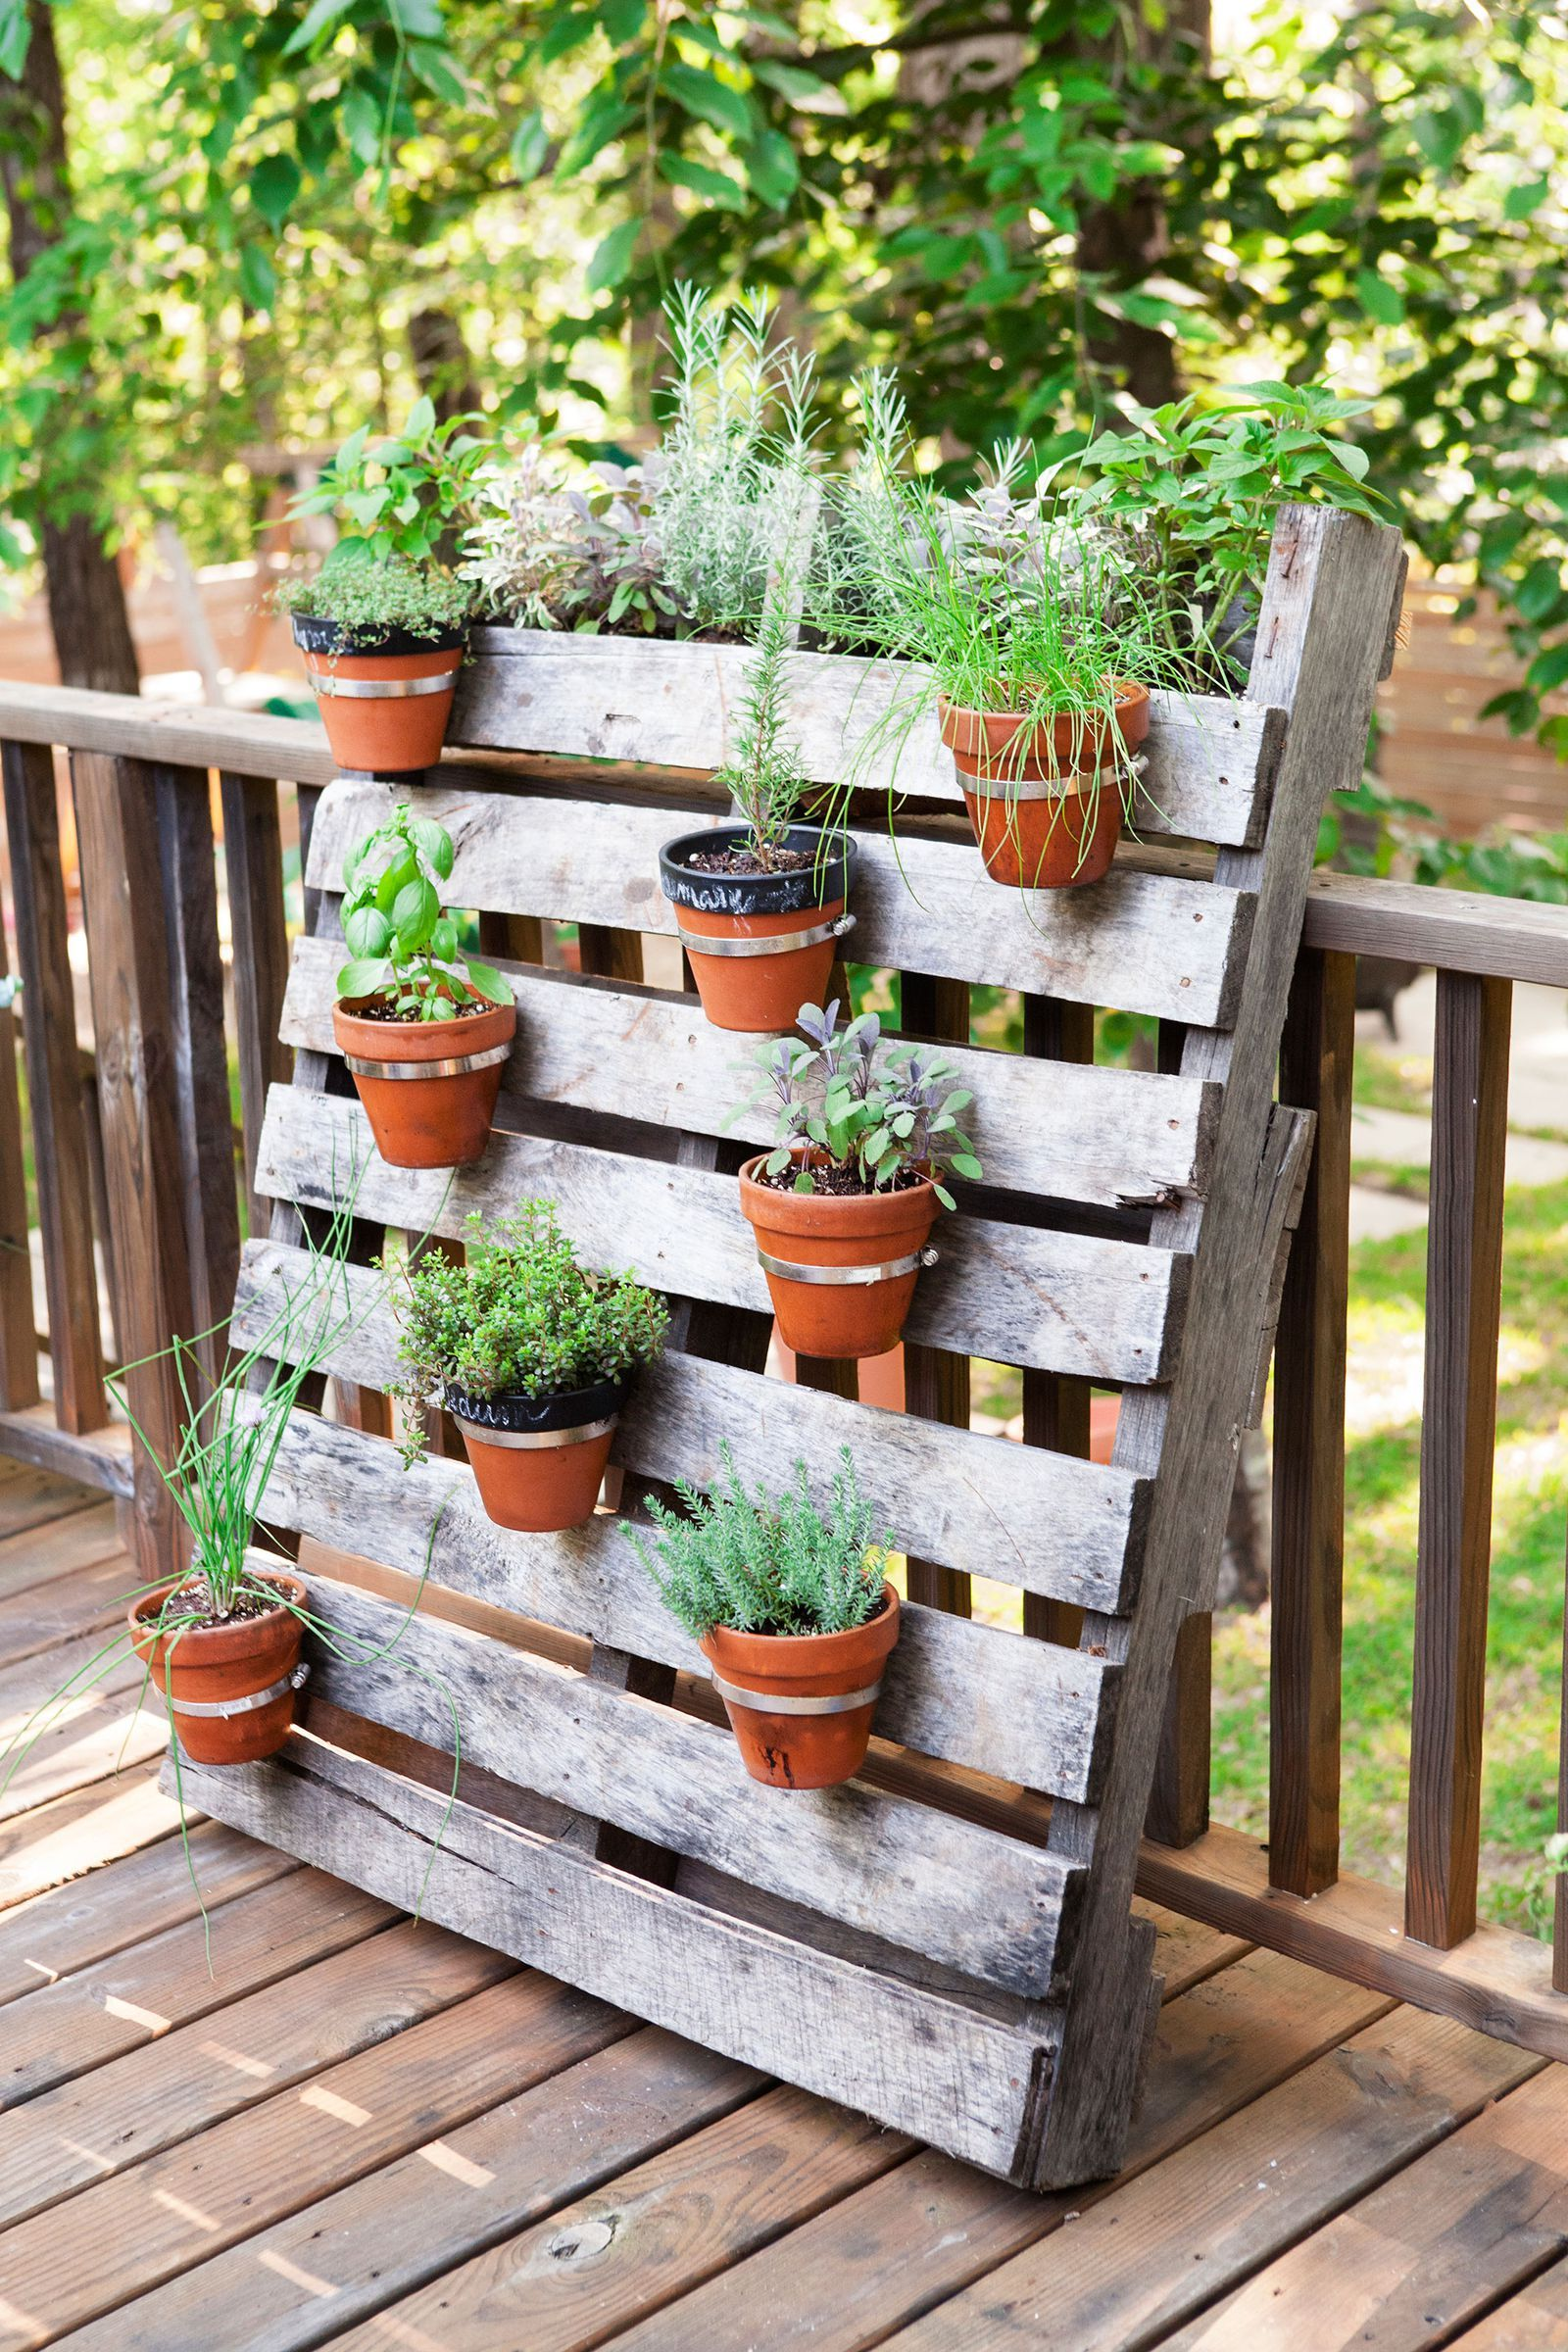 50 of the best craft projects on pinterest garden ladder on favorite beautiful garden design ideas for enhance your yard tips for gardening id=11925